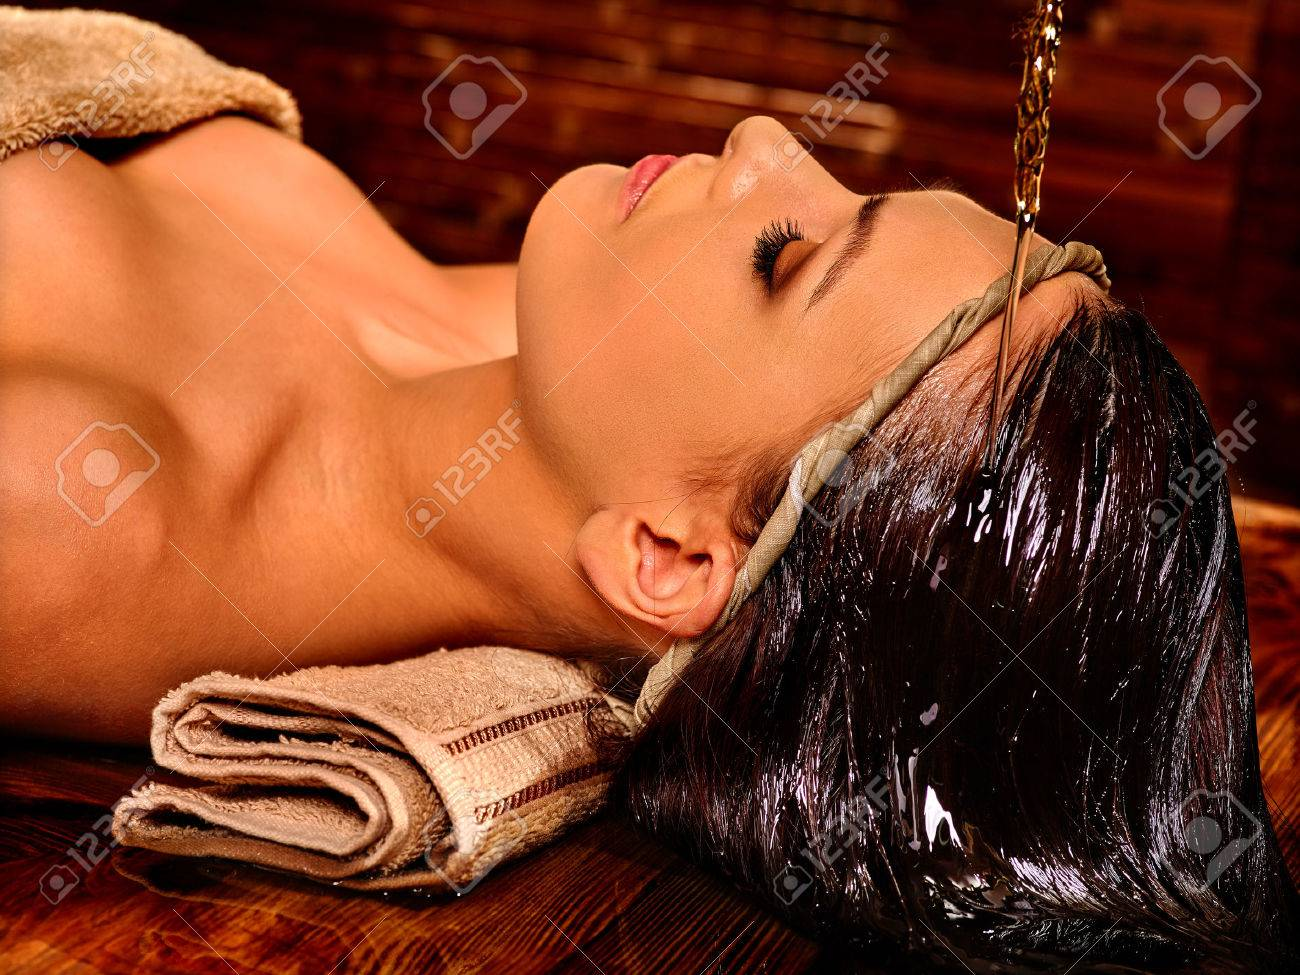 Clement recommend best of latina oil massage